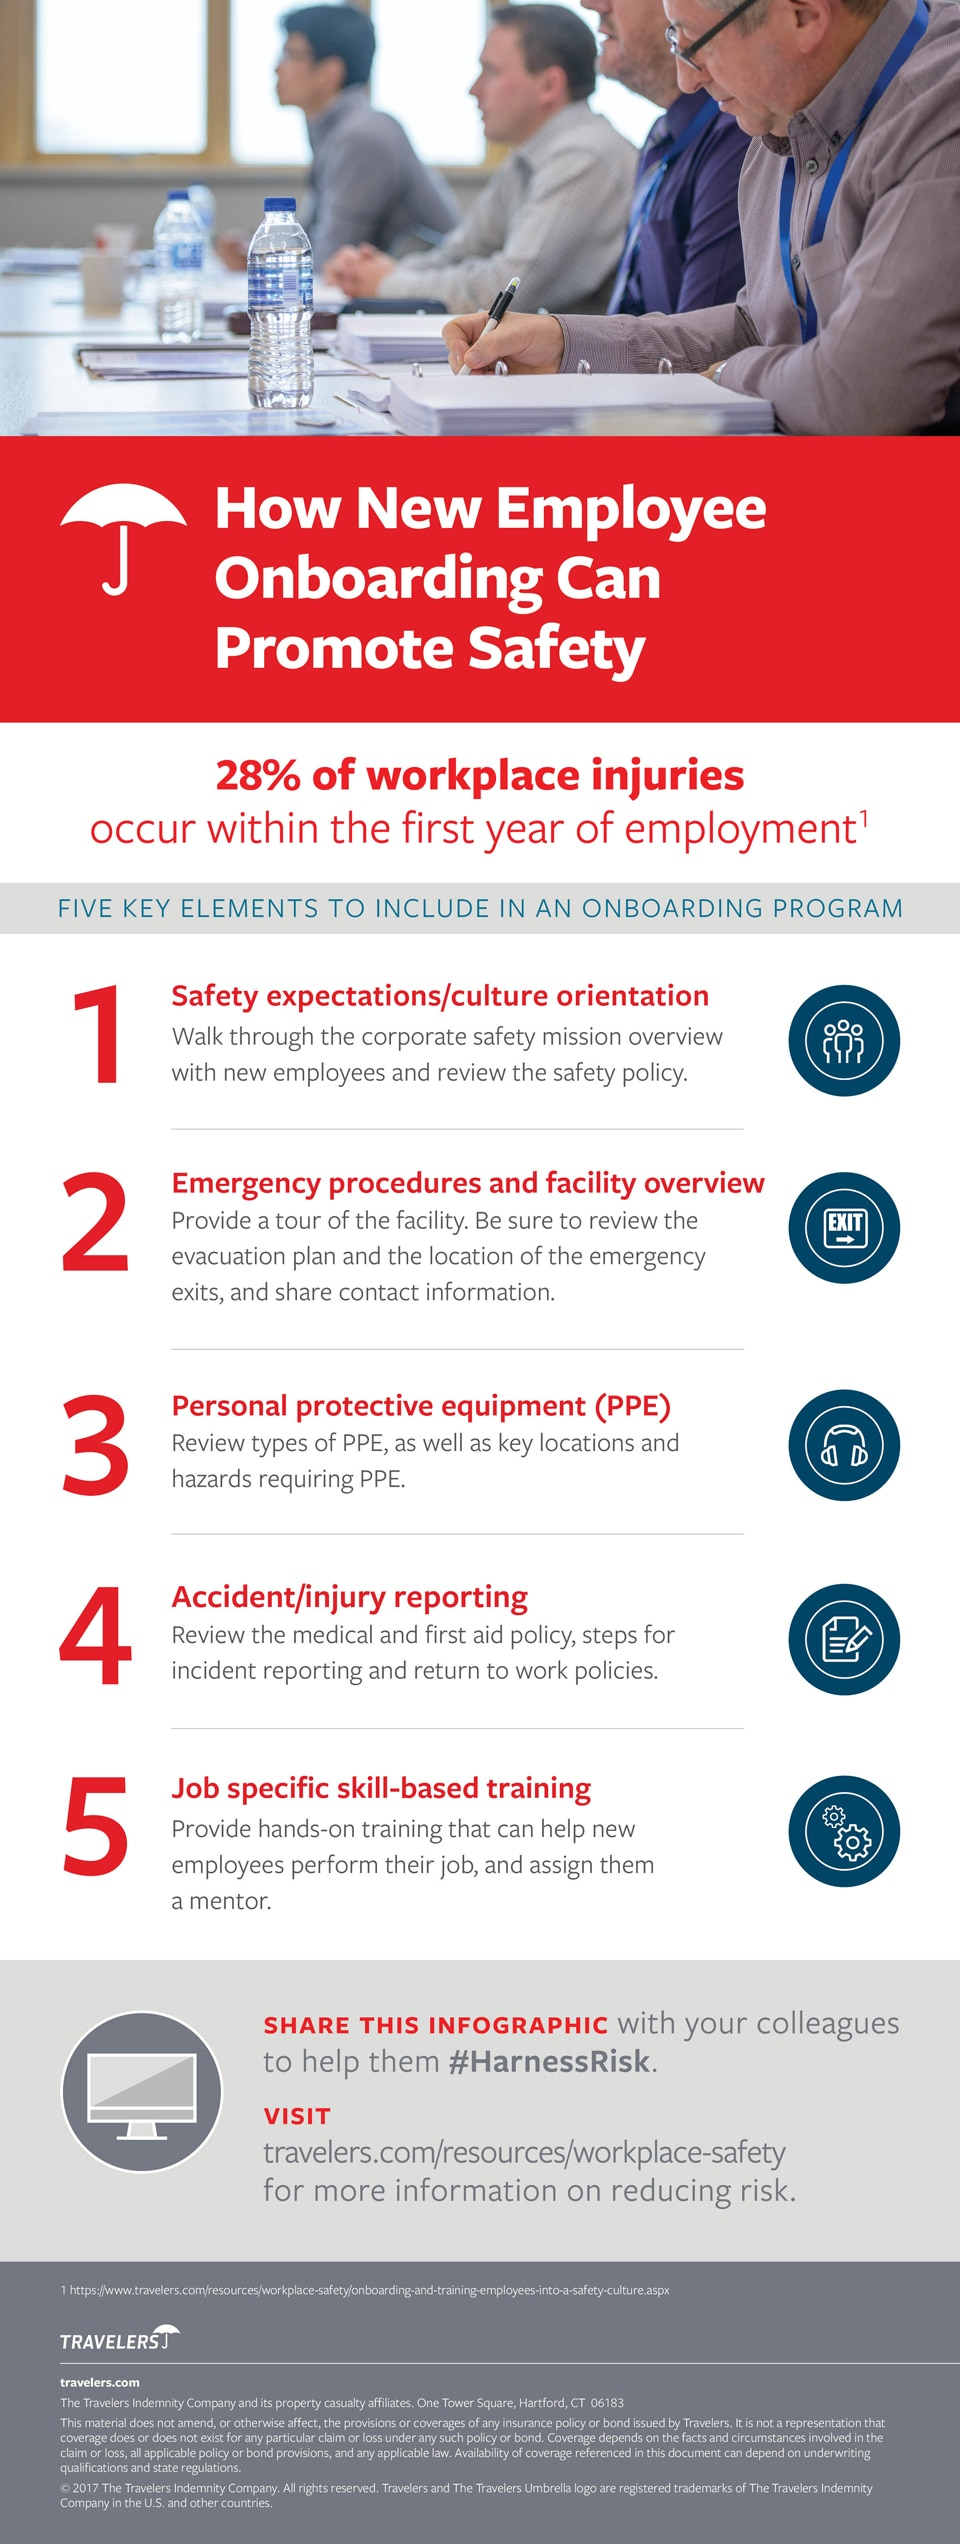 How New Employee Onboarding Can Promote Safety [Infographic]